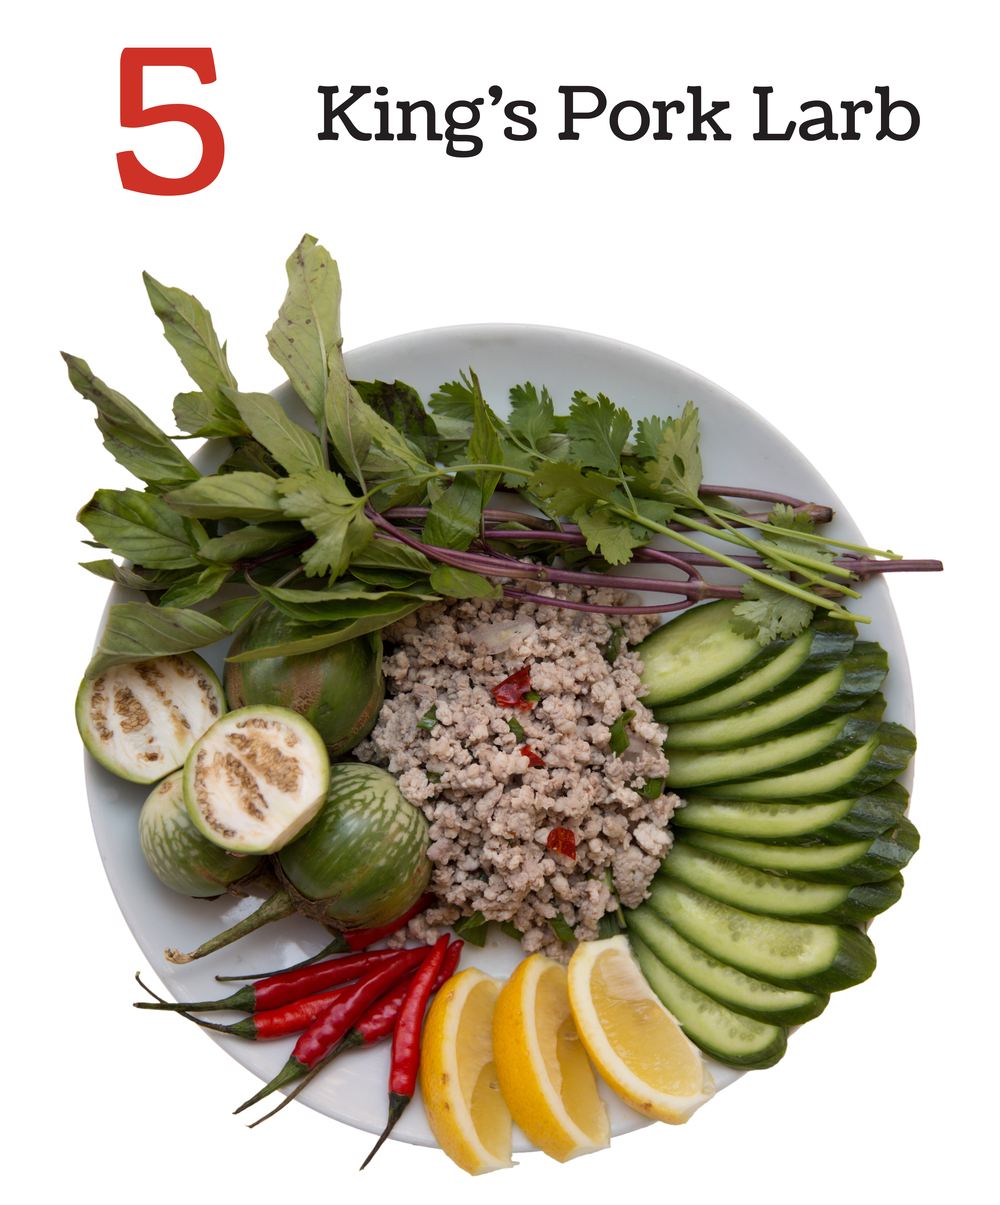 5 King's Pork Larb